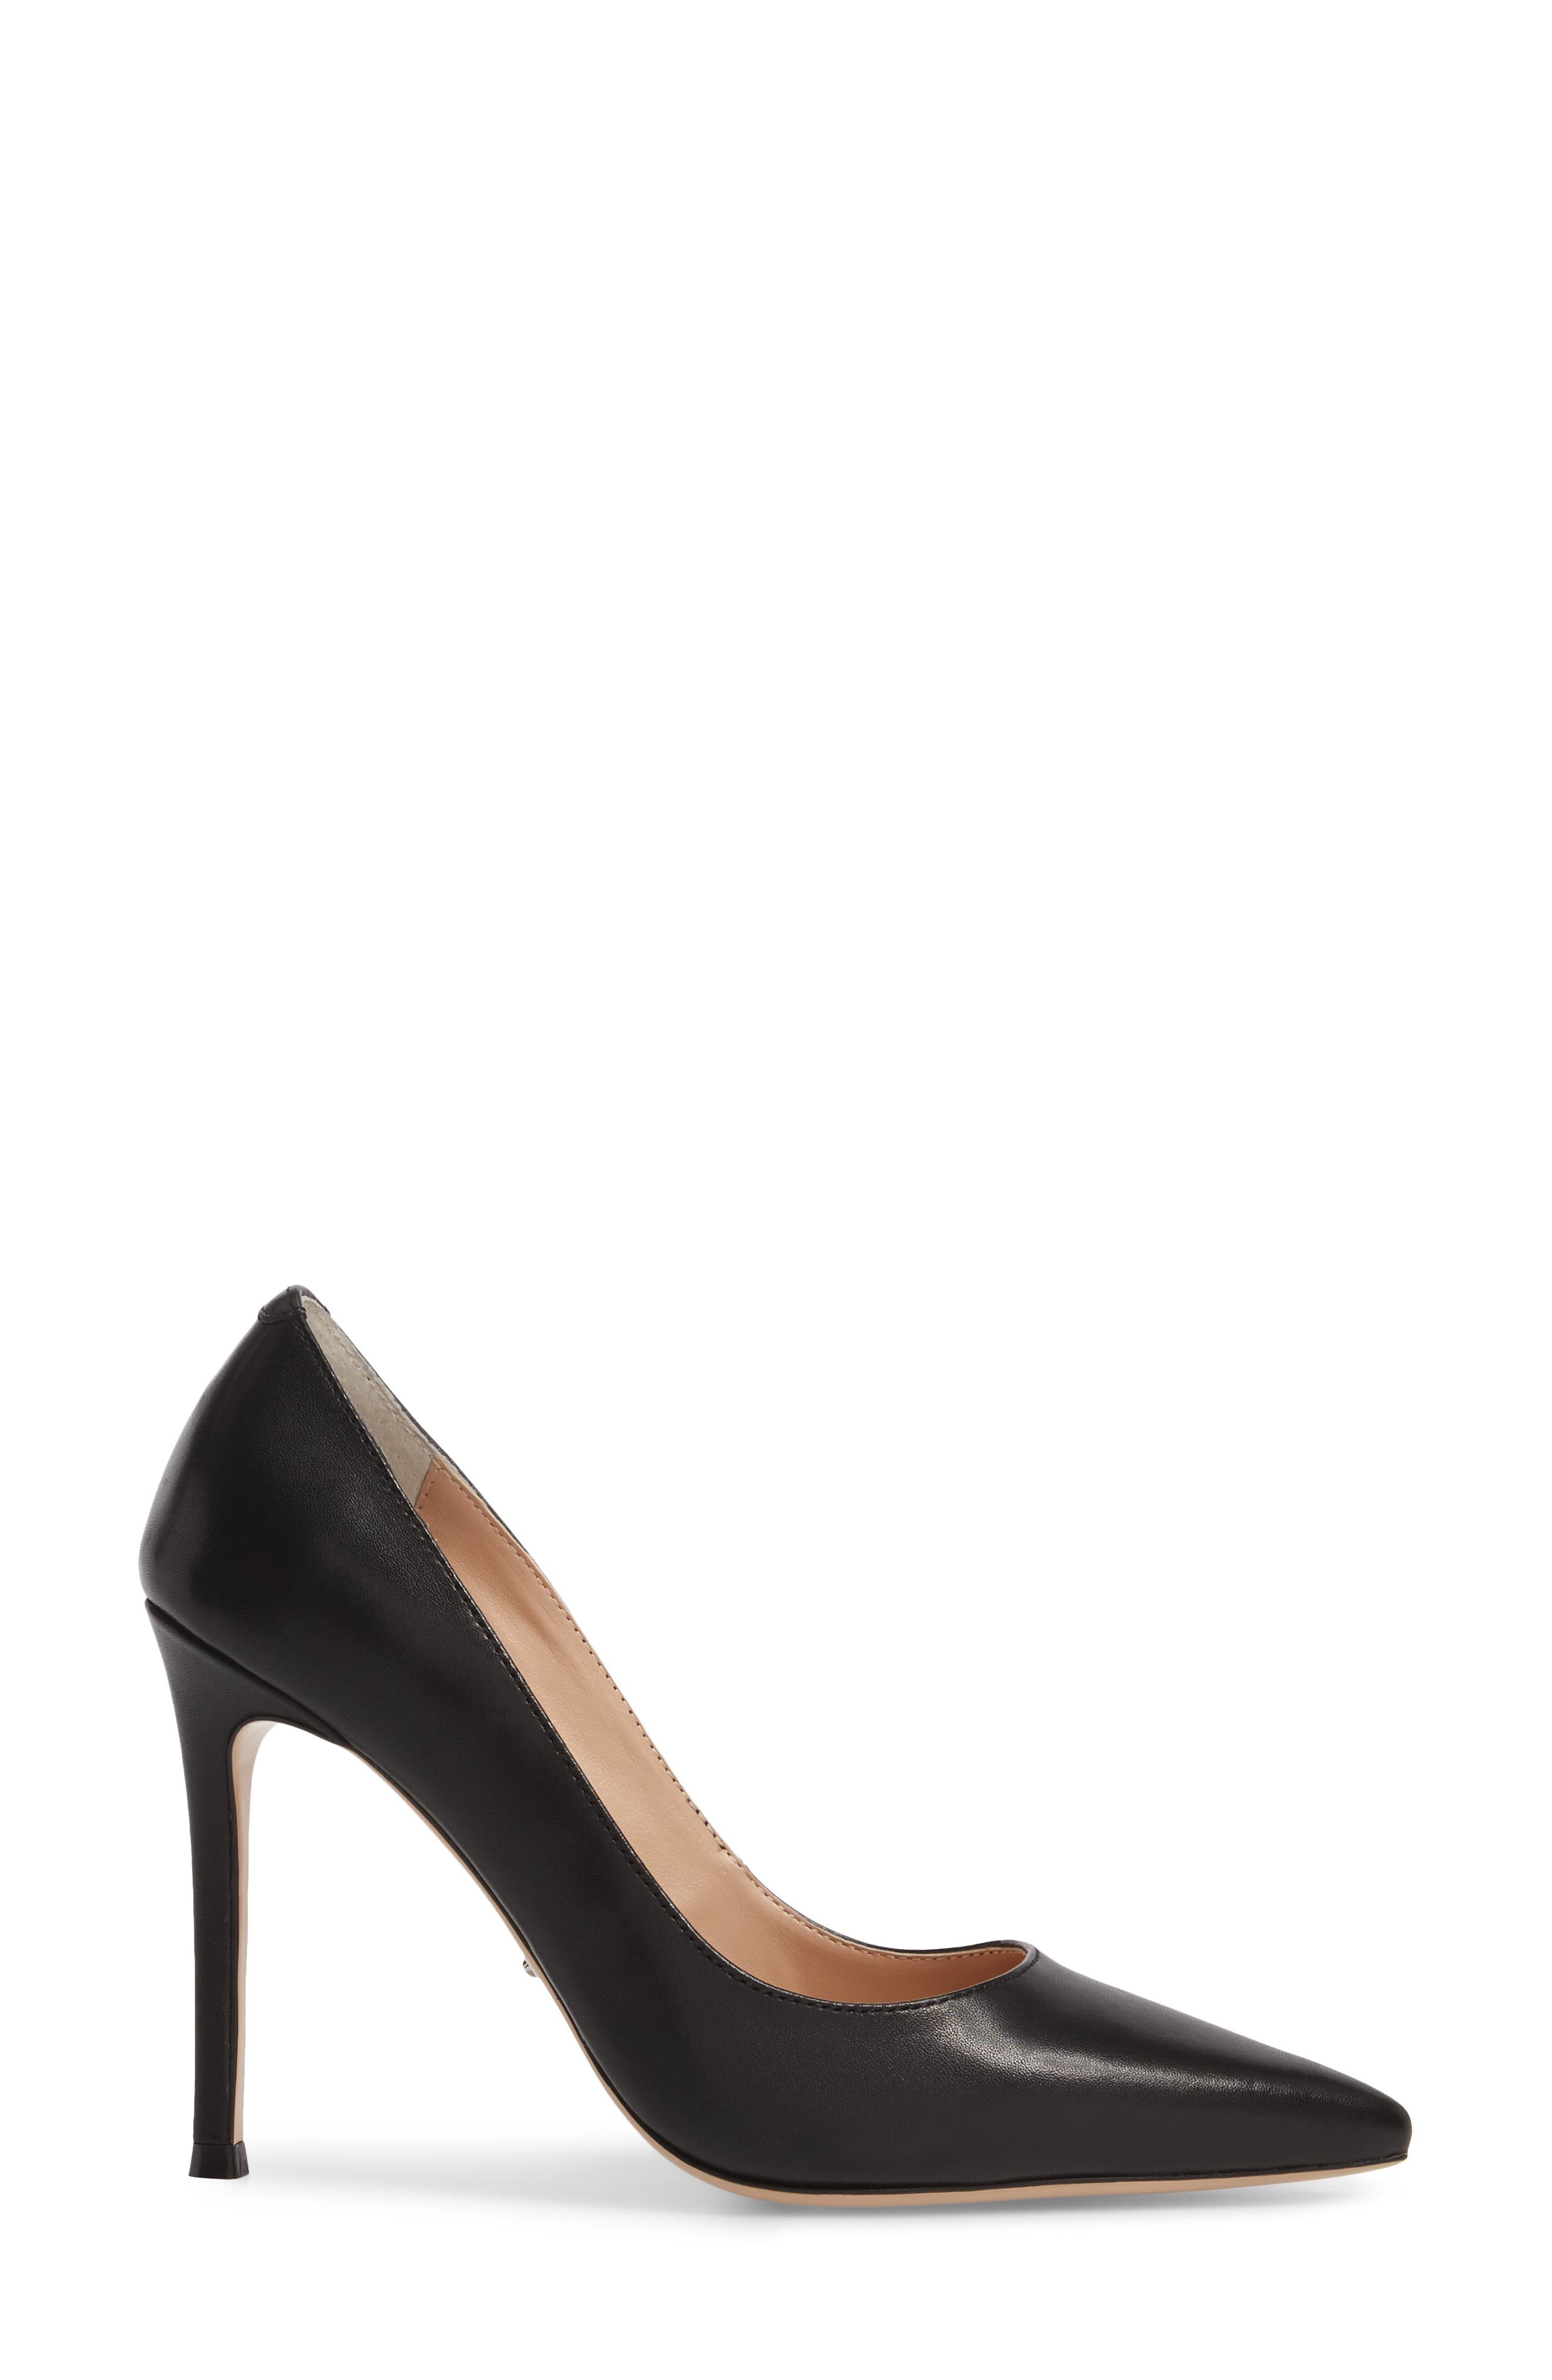 Lotus Pointy Toe Pump,                             Alternate thumbnail 3, color,                             001